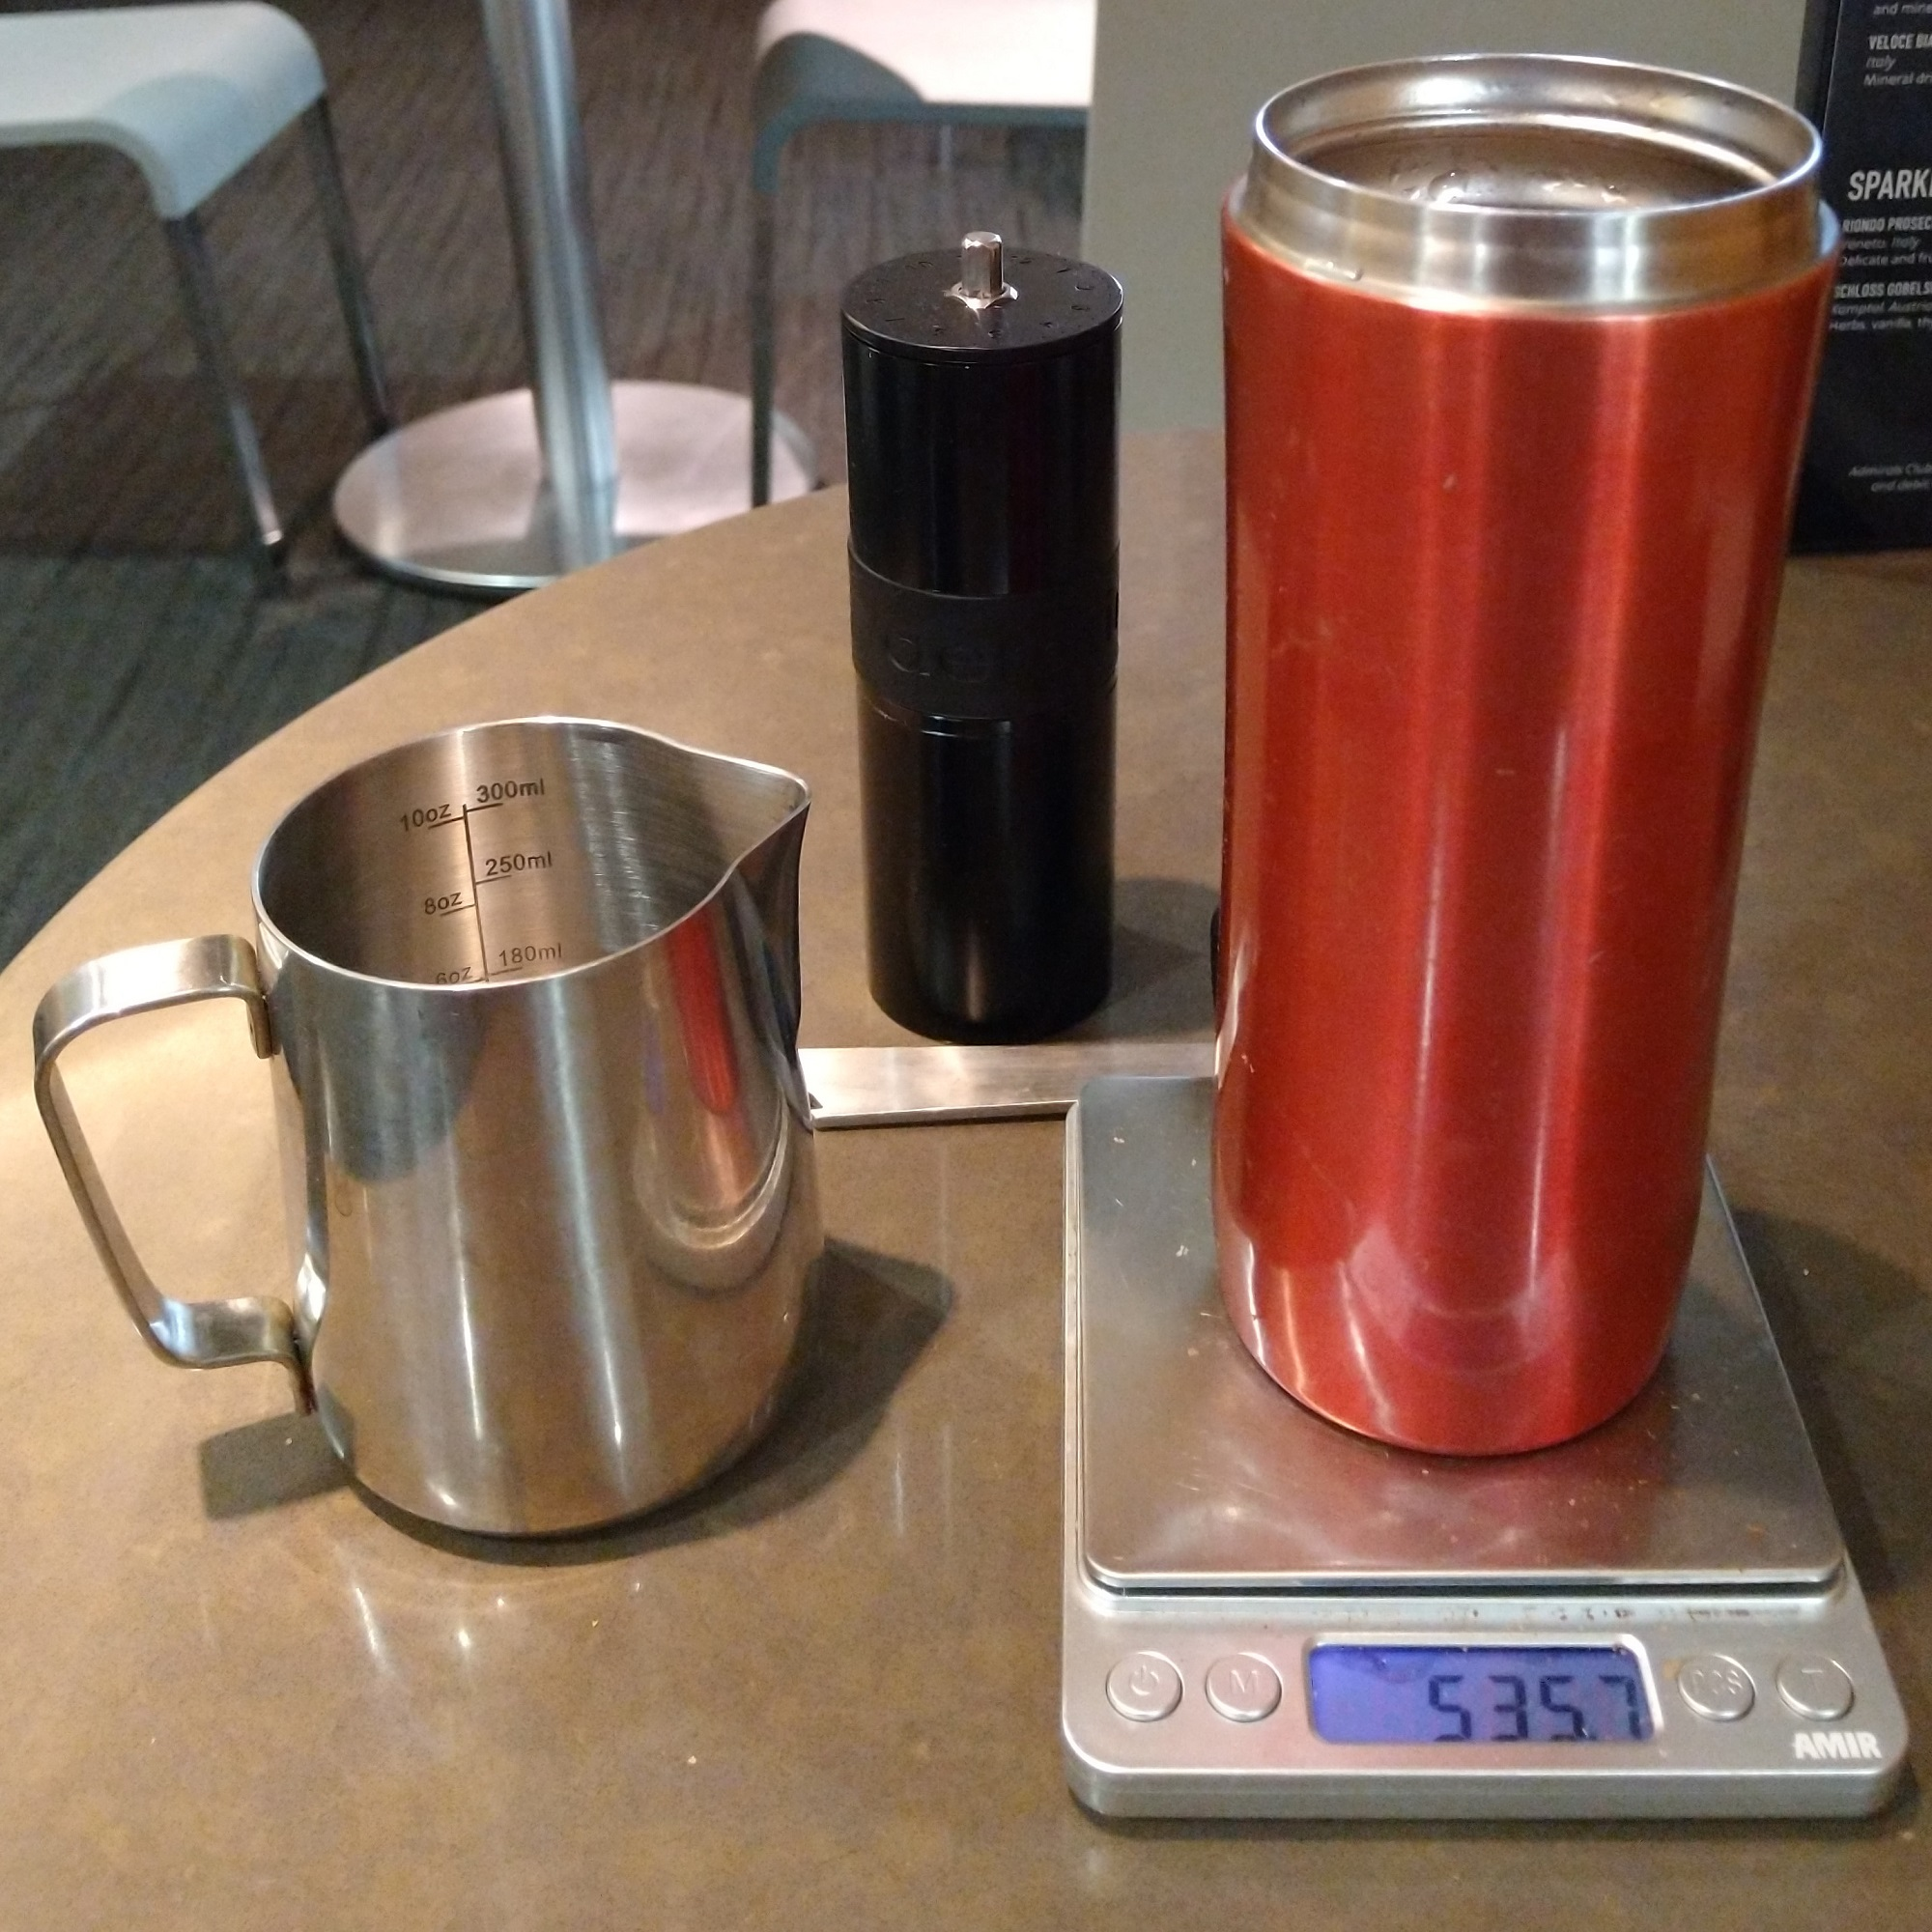 Making my own coffee in the Admirals Club at Atlanta's Hartsfield-Jackson airport. On display are my Travel Press and Aergrind, with beans from Tandem Coffee Roasters and hot water from the lounge's coffee machine.